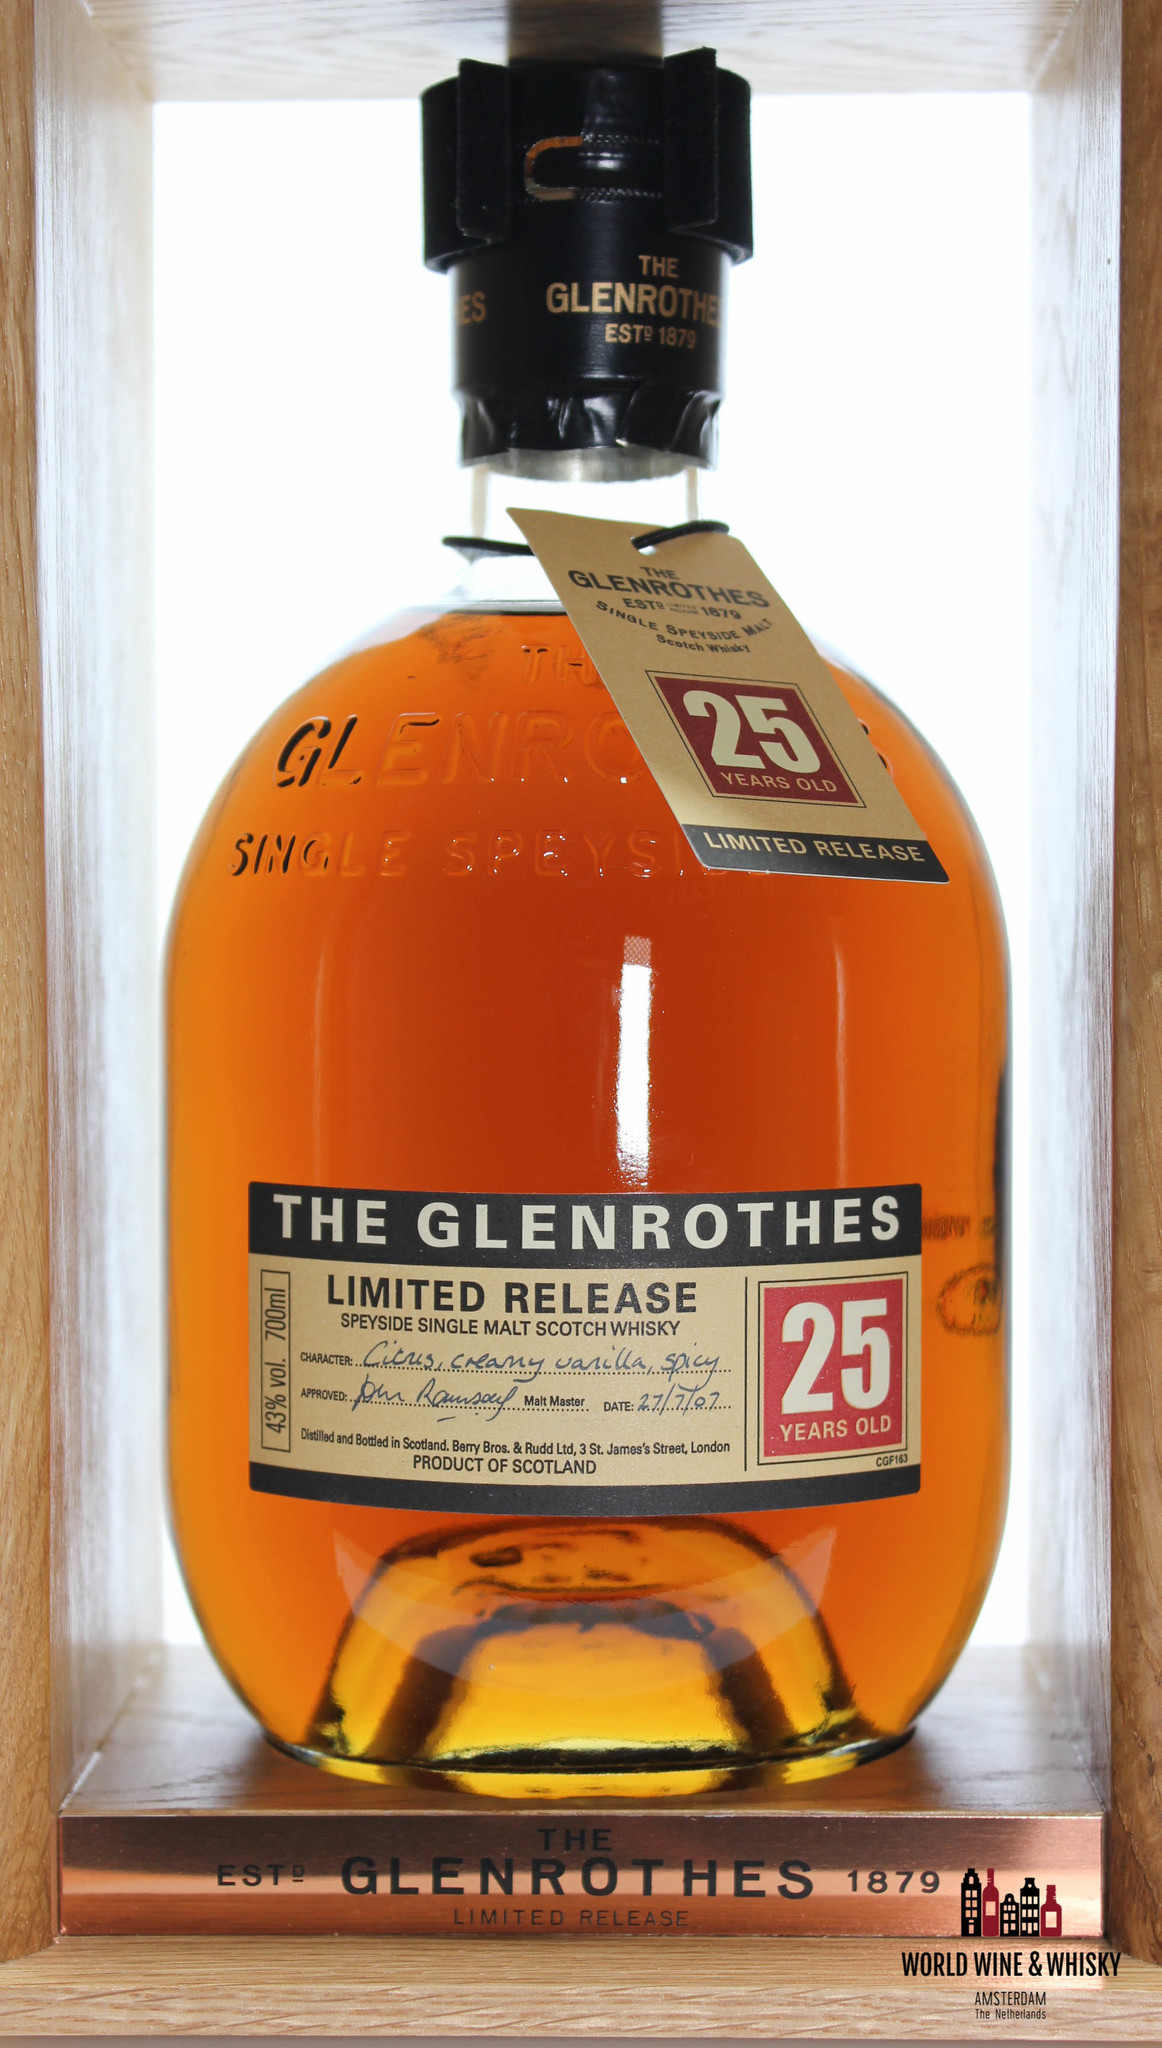 Glenrothes The Glenrothes 25 Years Old - Limited Release 2007 43%